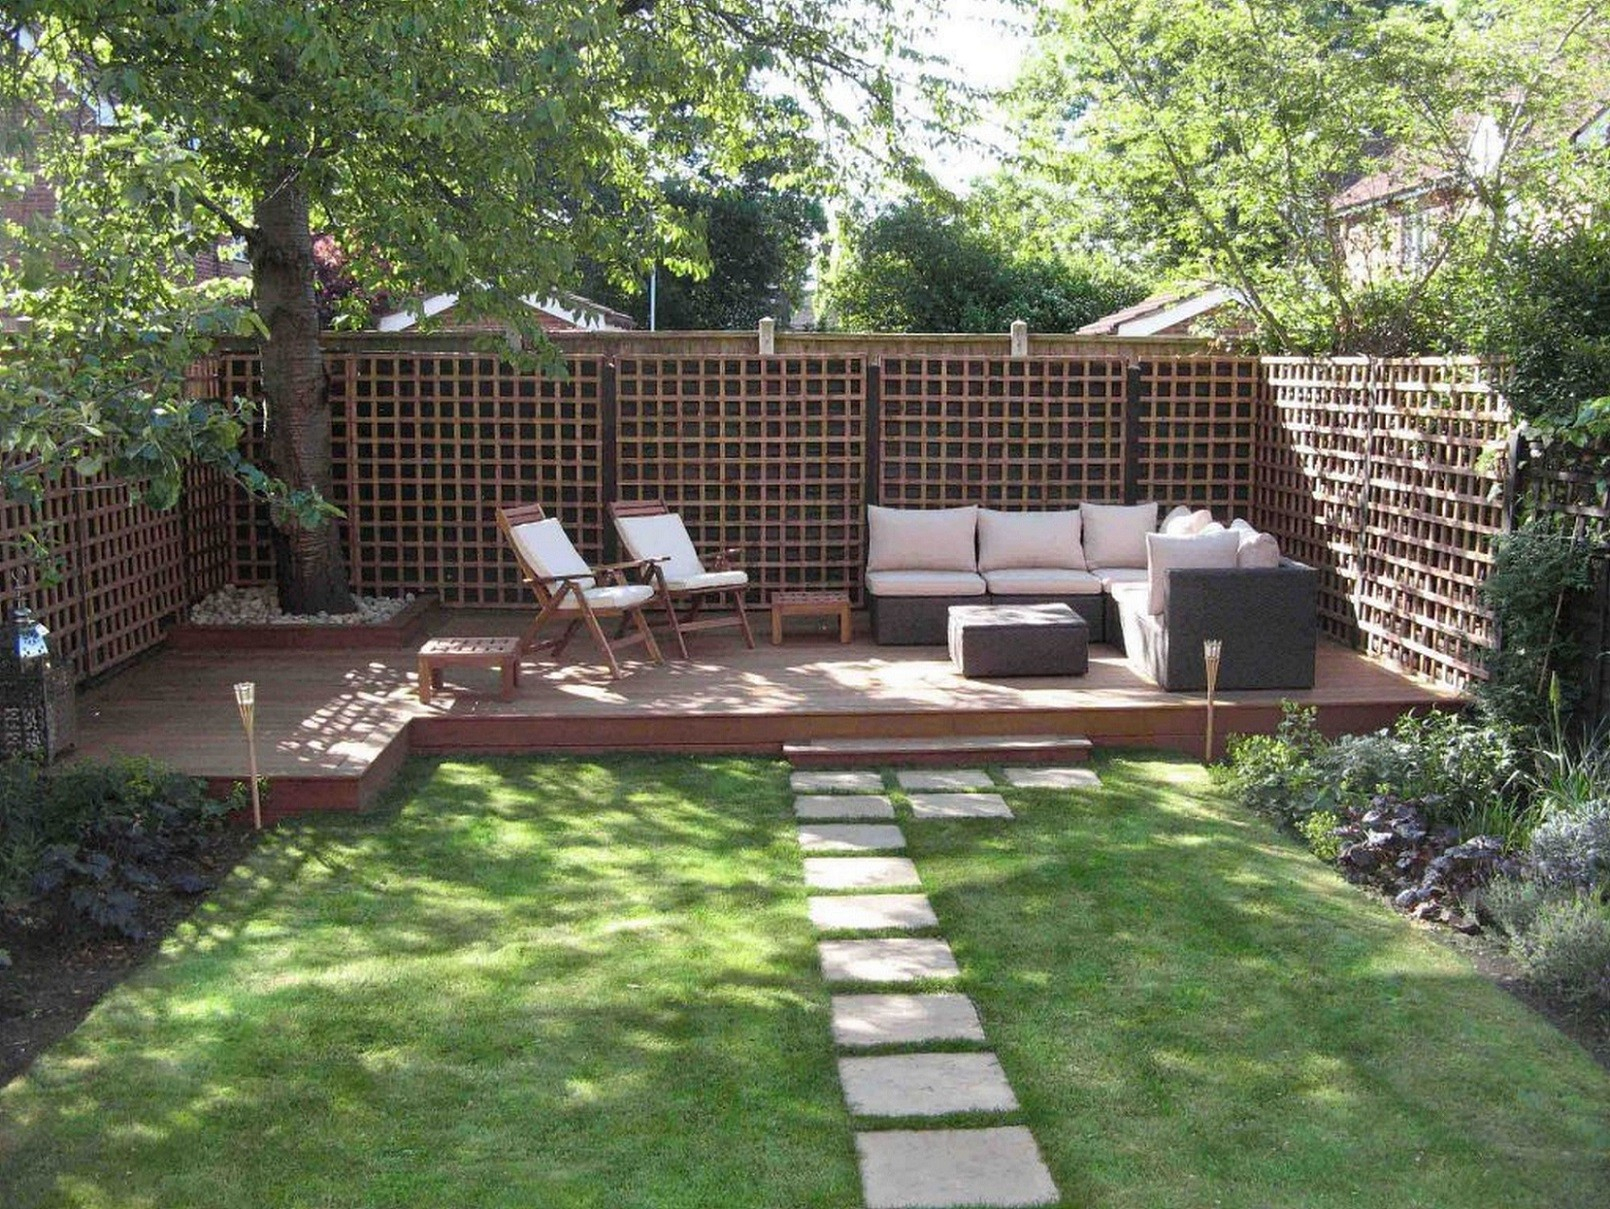 Cool Backyard Ideas Tips To Apply Yard Laythsidiq intended for Cool Backyard Ideas